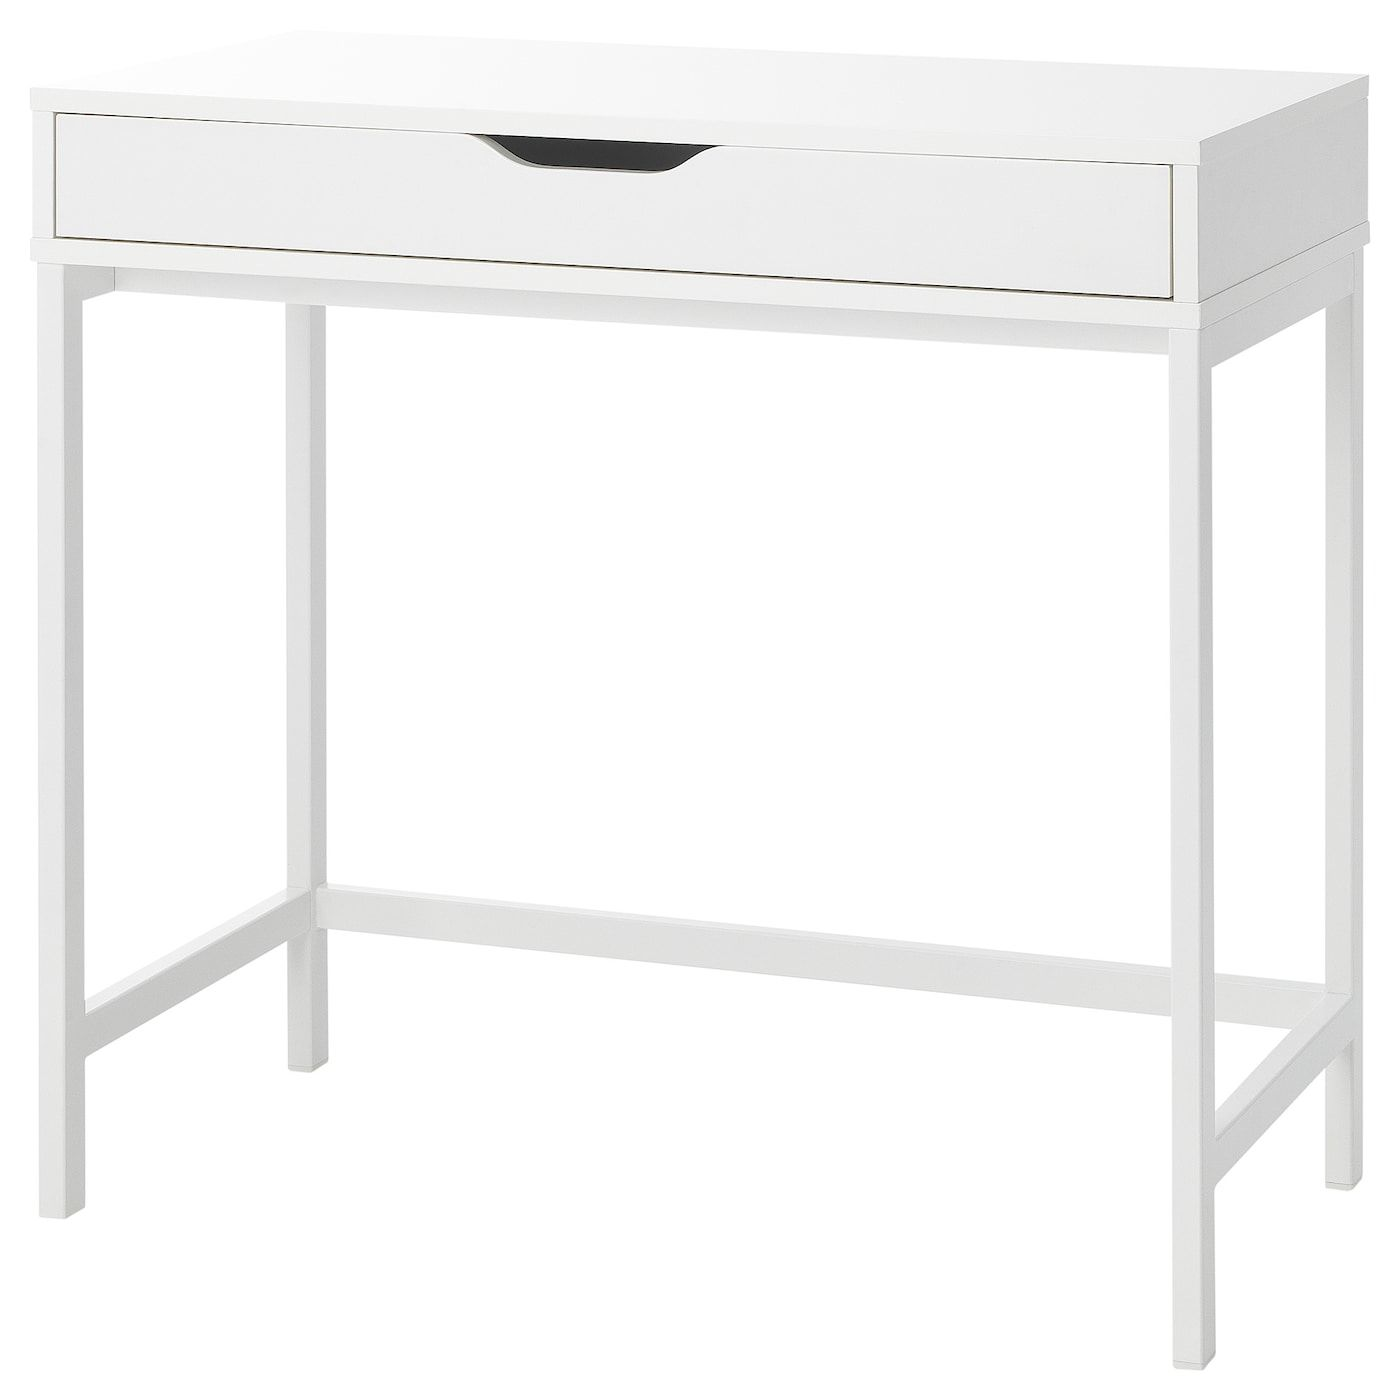 IKEA - ALEX Desk ALEX white, Desk, 79x40 cm. Drawe